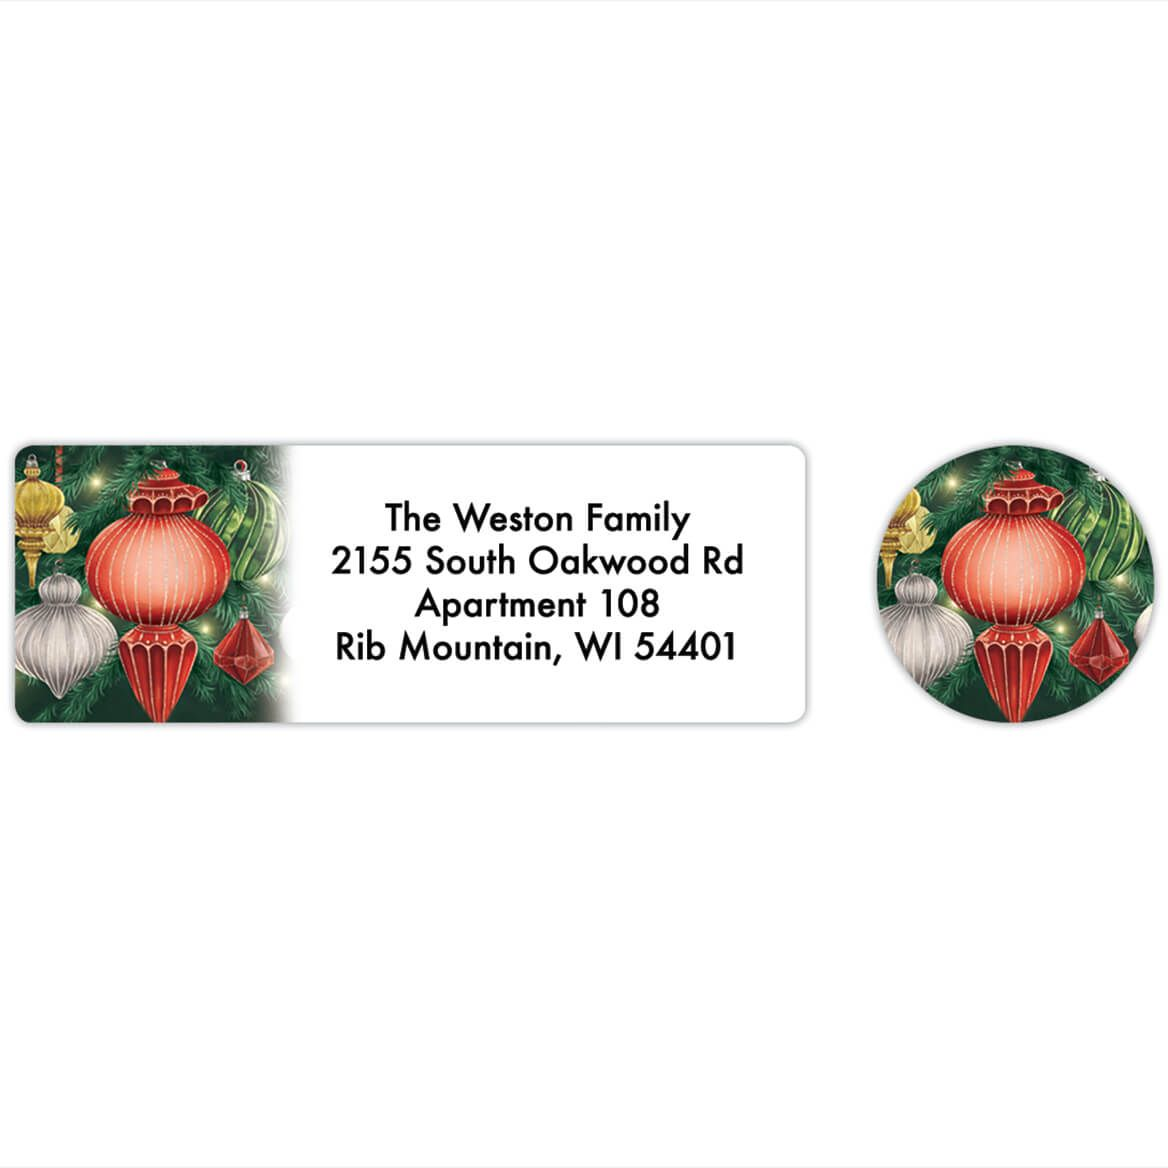 Personalized Twinkling Ornaments Labels & Envelope Seals 20-368270